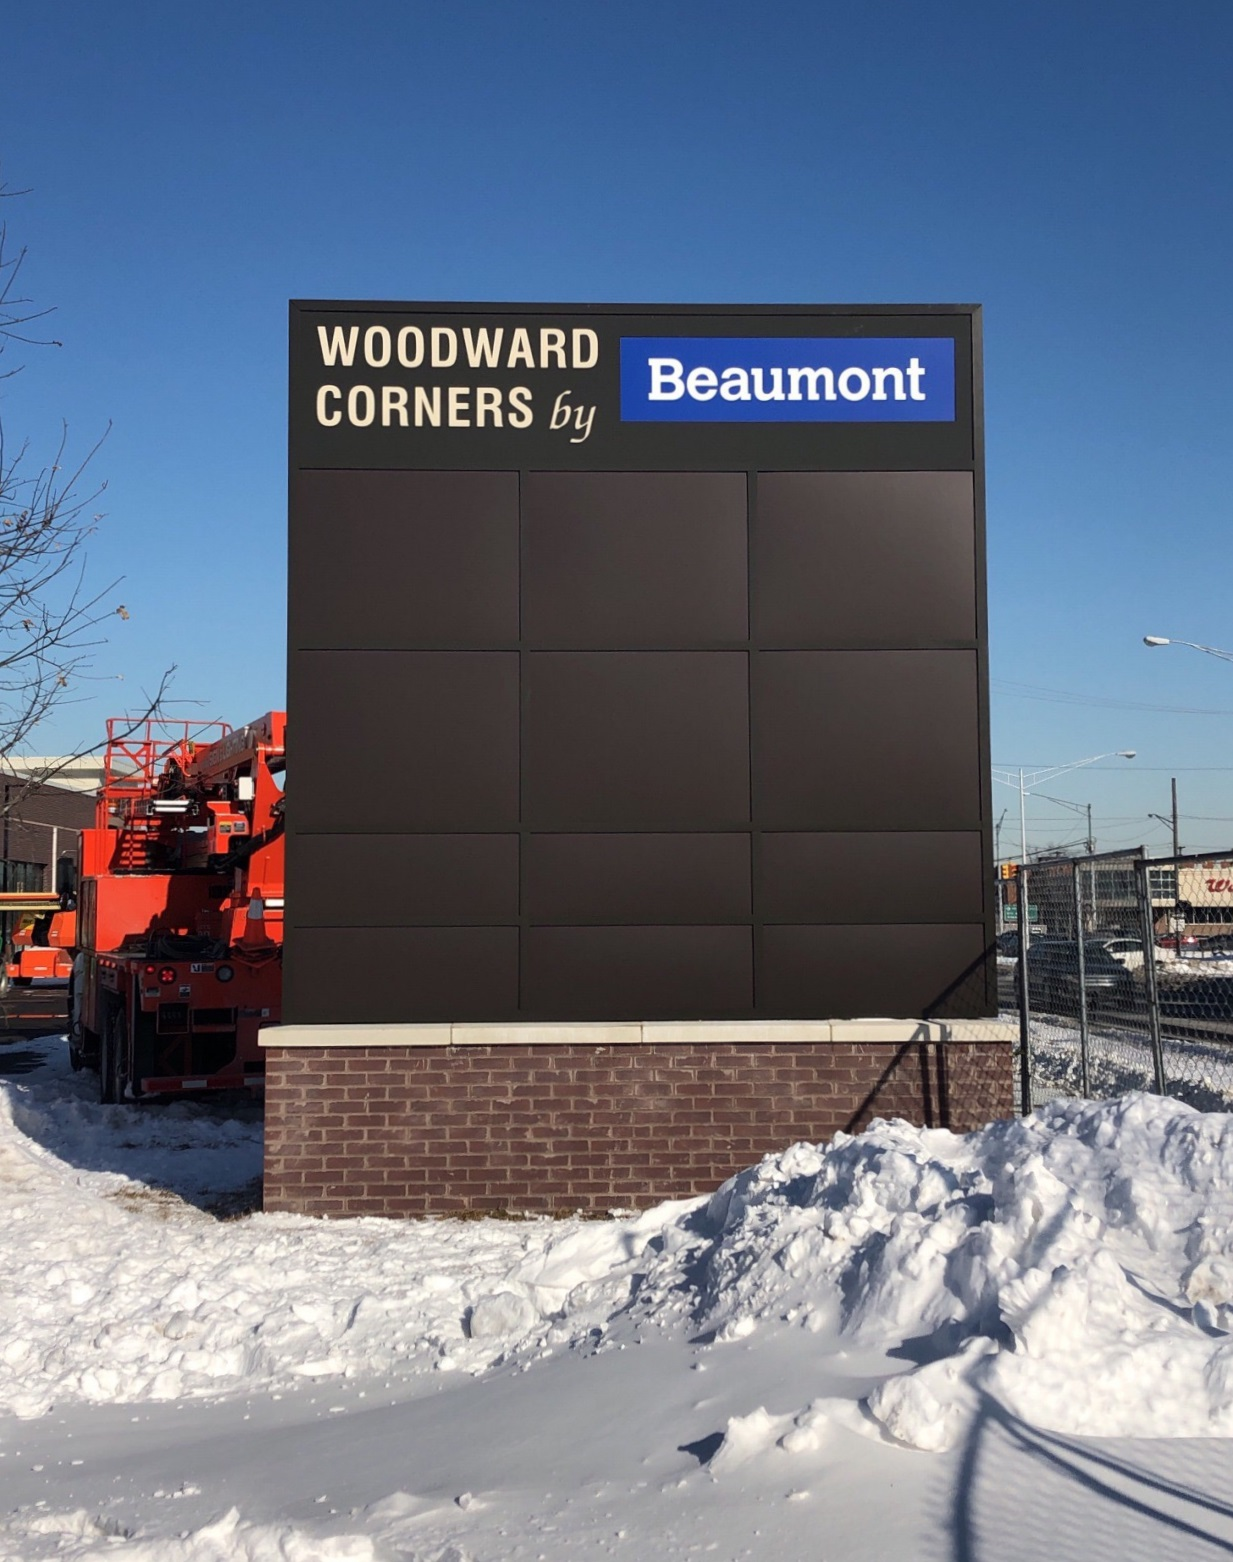 Woodward Corners by Beaumont  - Monument Sign - Royal Oak